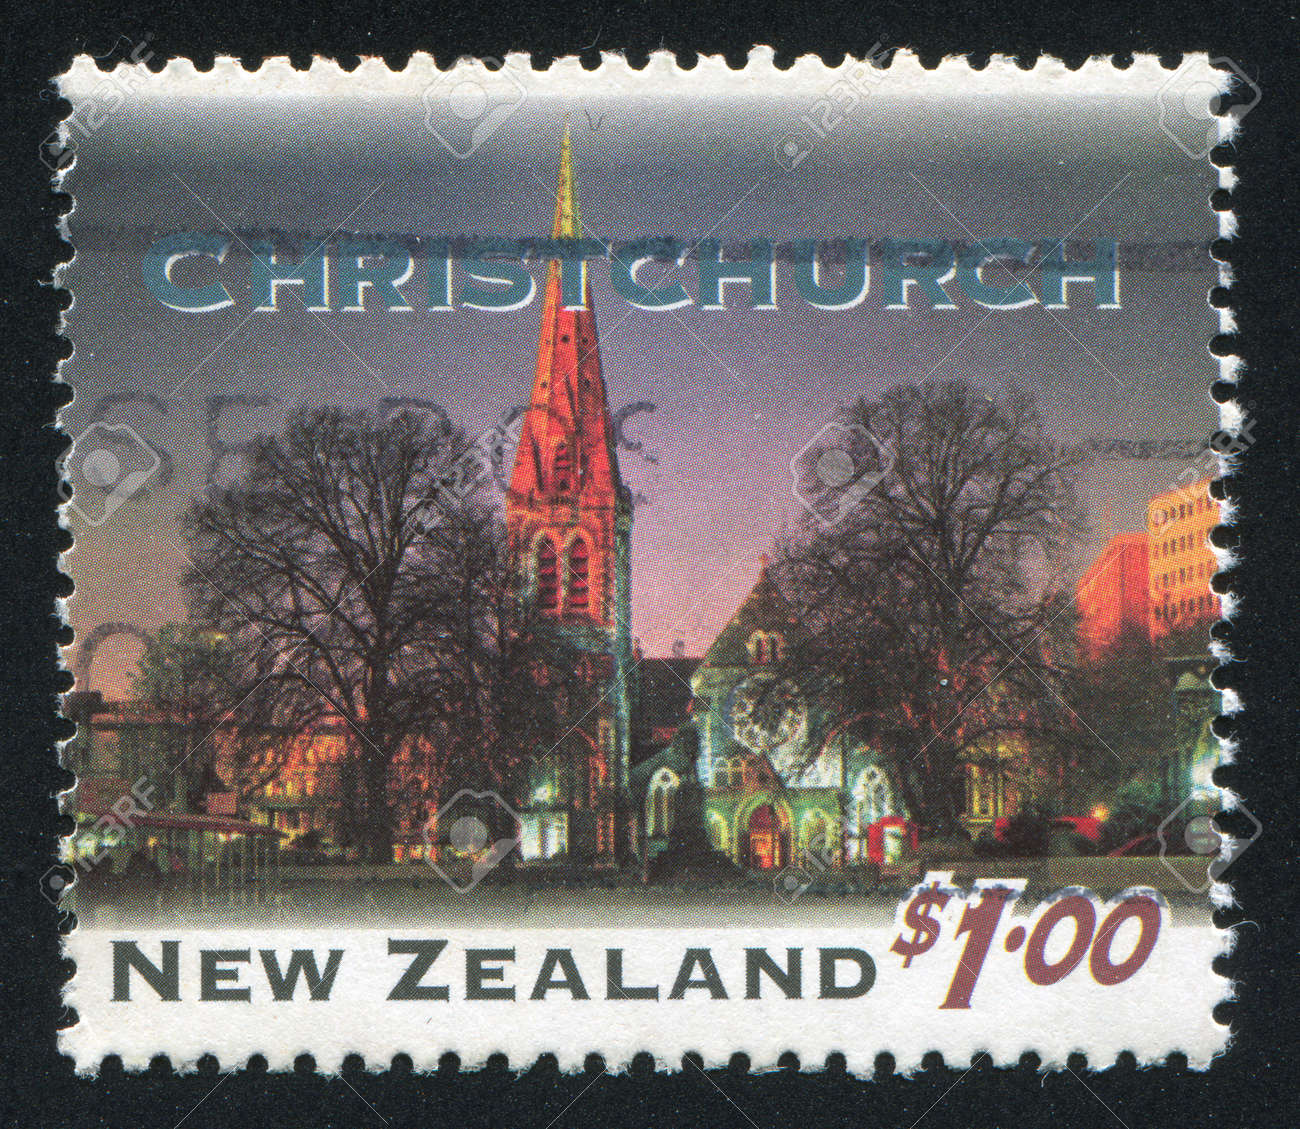 NEW ZEALAND - CIRCA 1995: stamp printed by New Zealand, shows New Zealand at Night, Christchurch, circa 1995 Stock Photo - 13891859